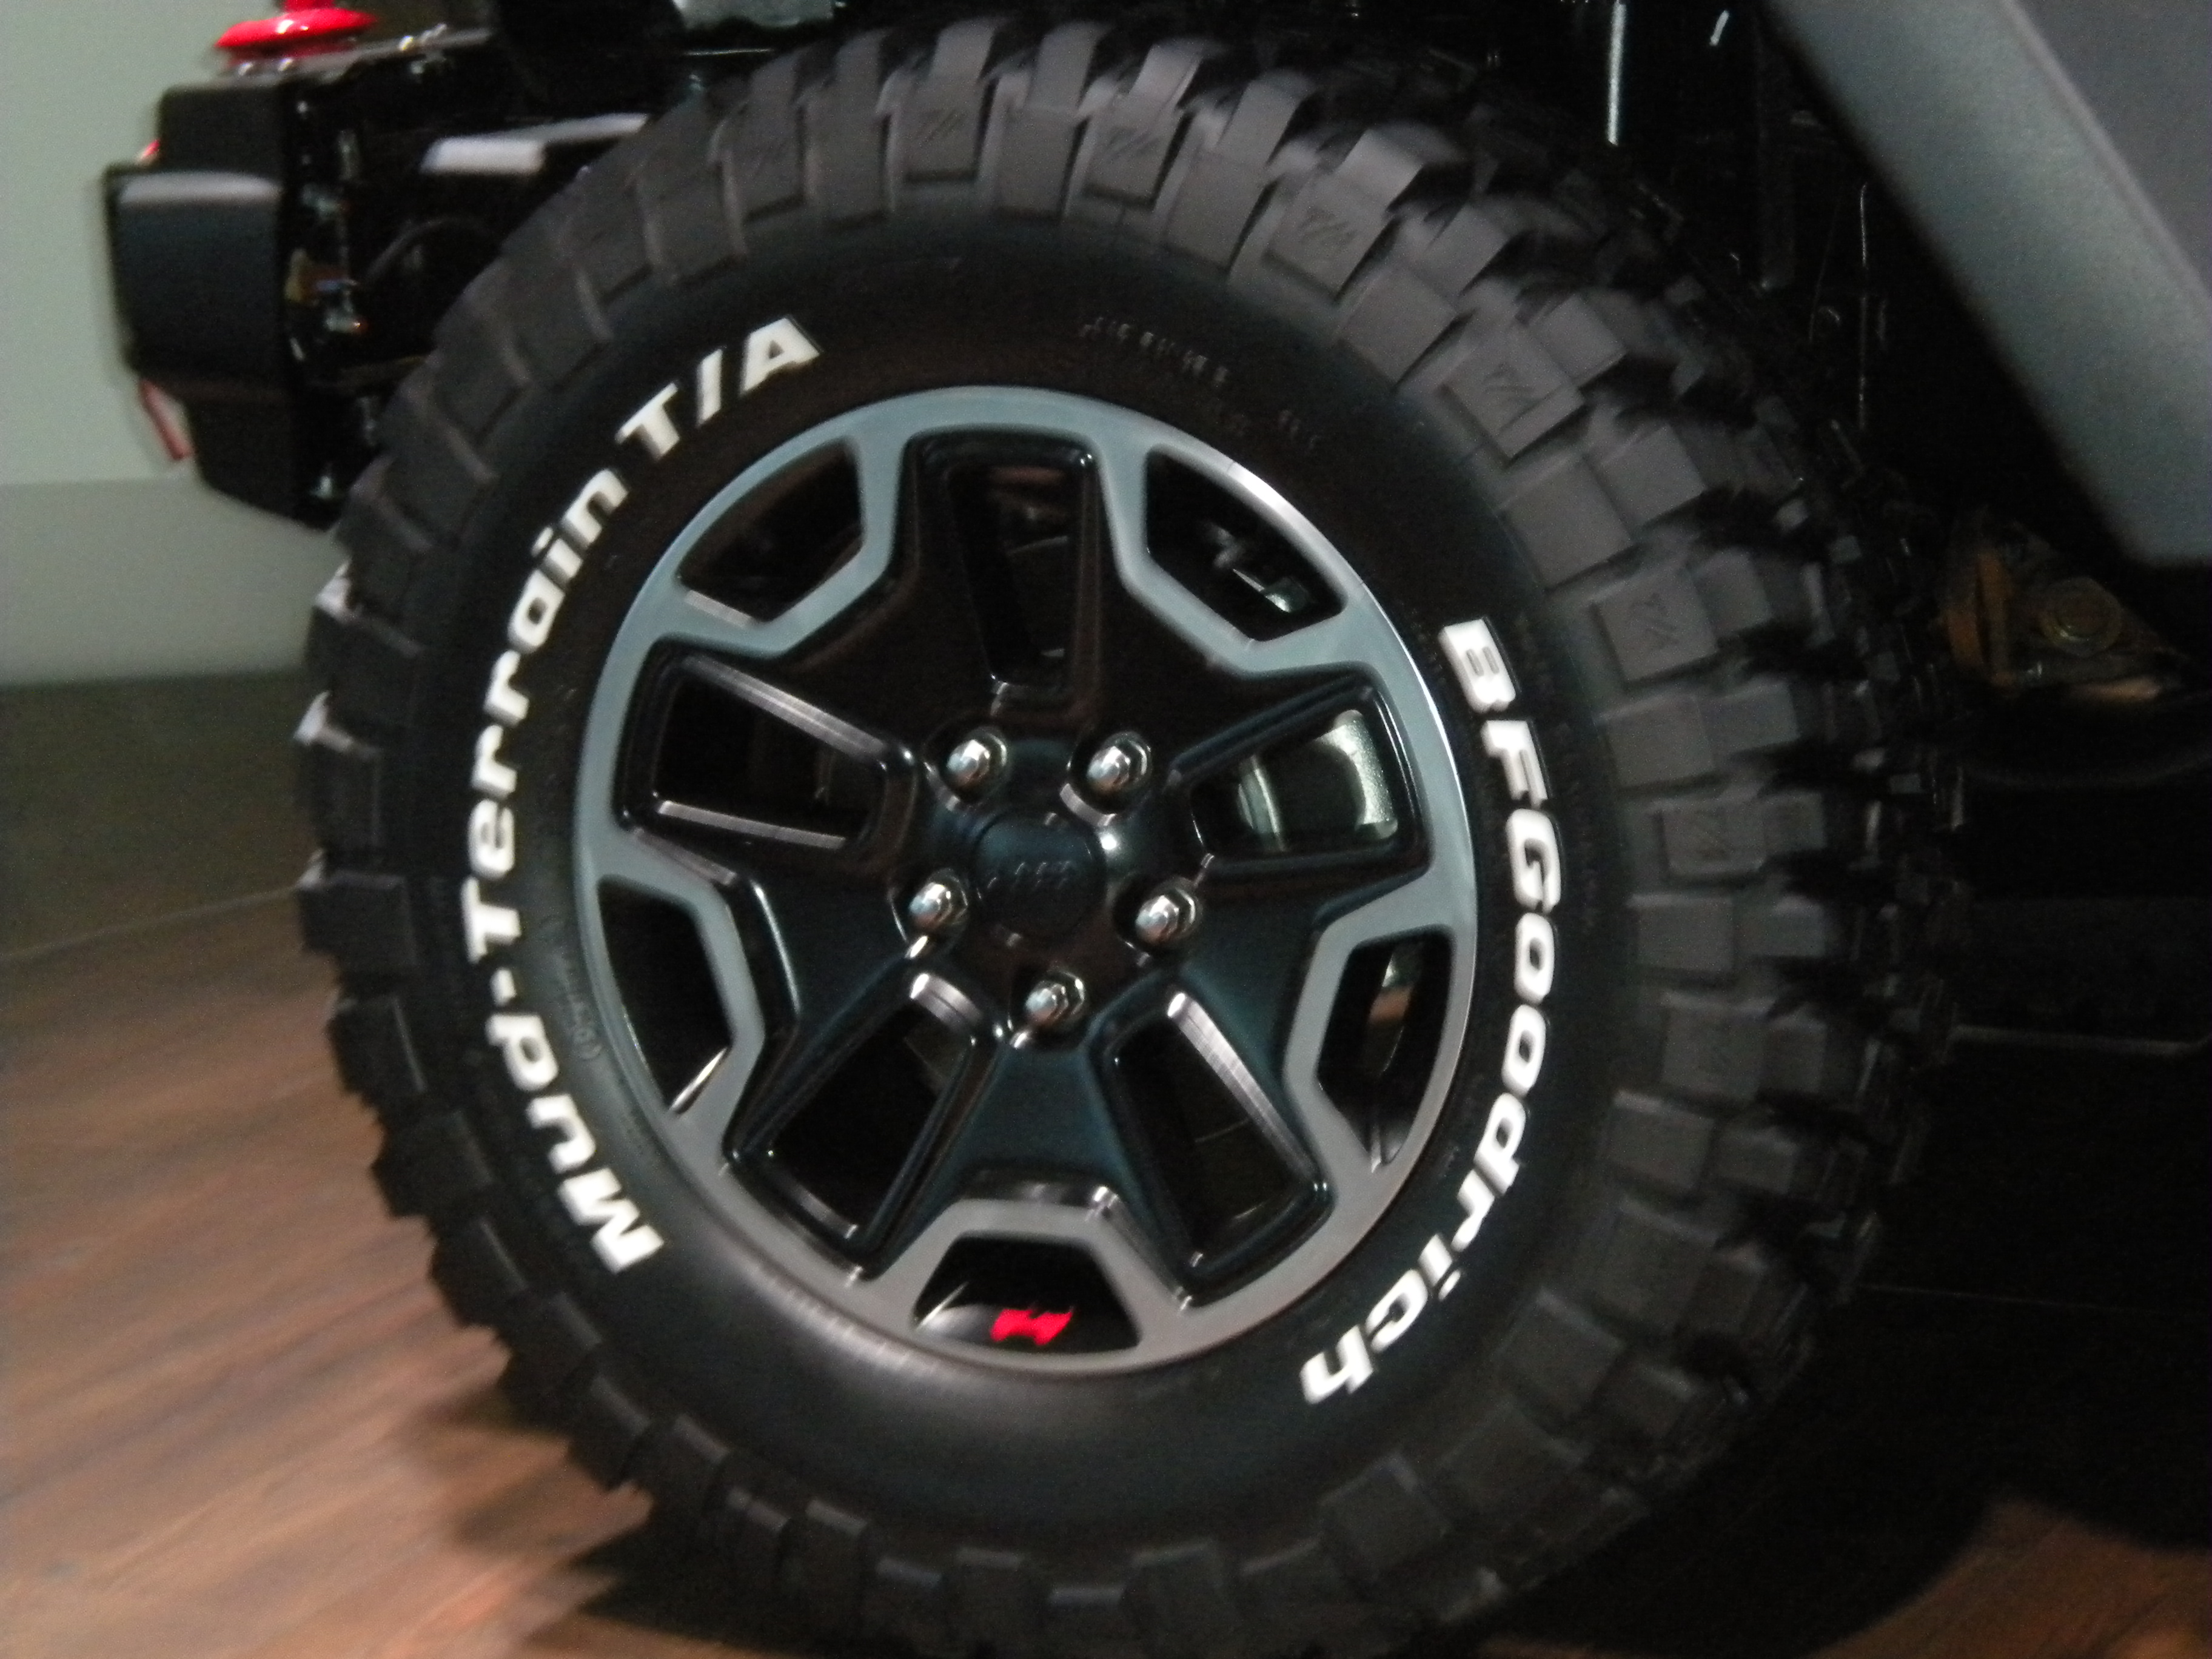 Bfg At Tires >> File:Jeep Wrangler Rubicon 10th Anniversary Edition Wheels.JPG - Wikimedia Commons